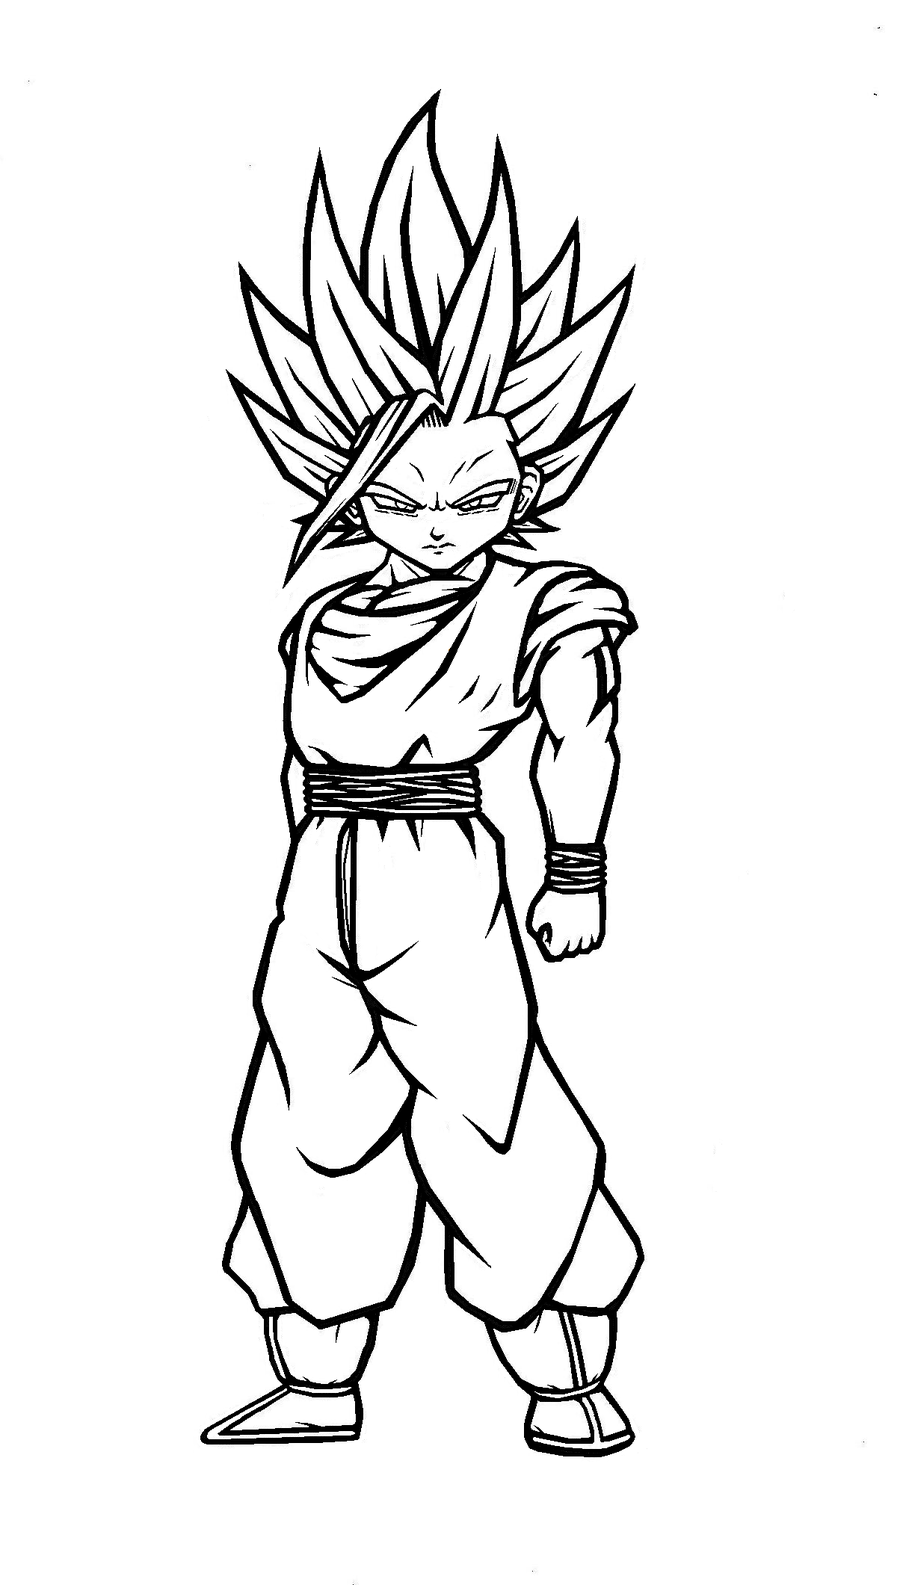 super saiyans coloring pages goku super saiyan 2 drawing at getdrawings free download pages super saiyans coloring